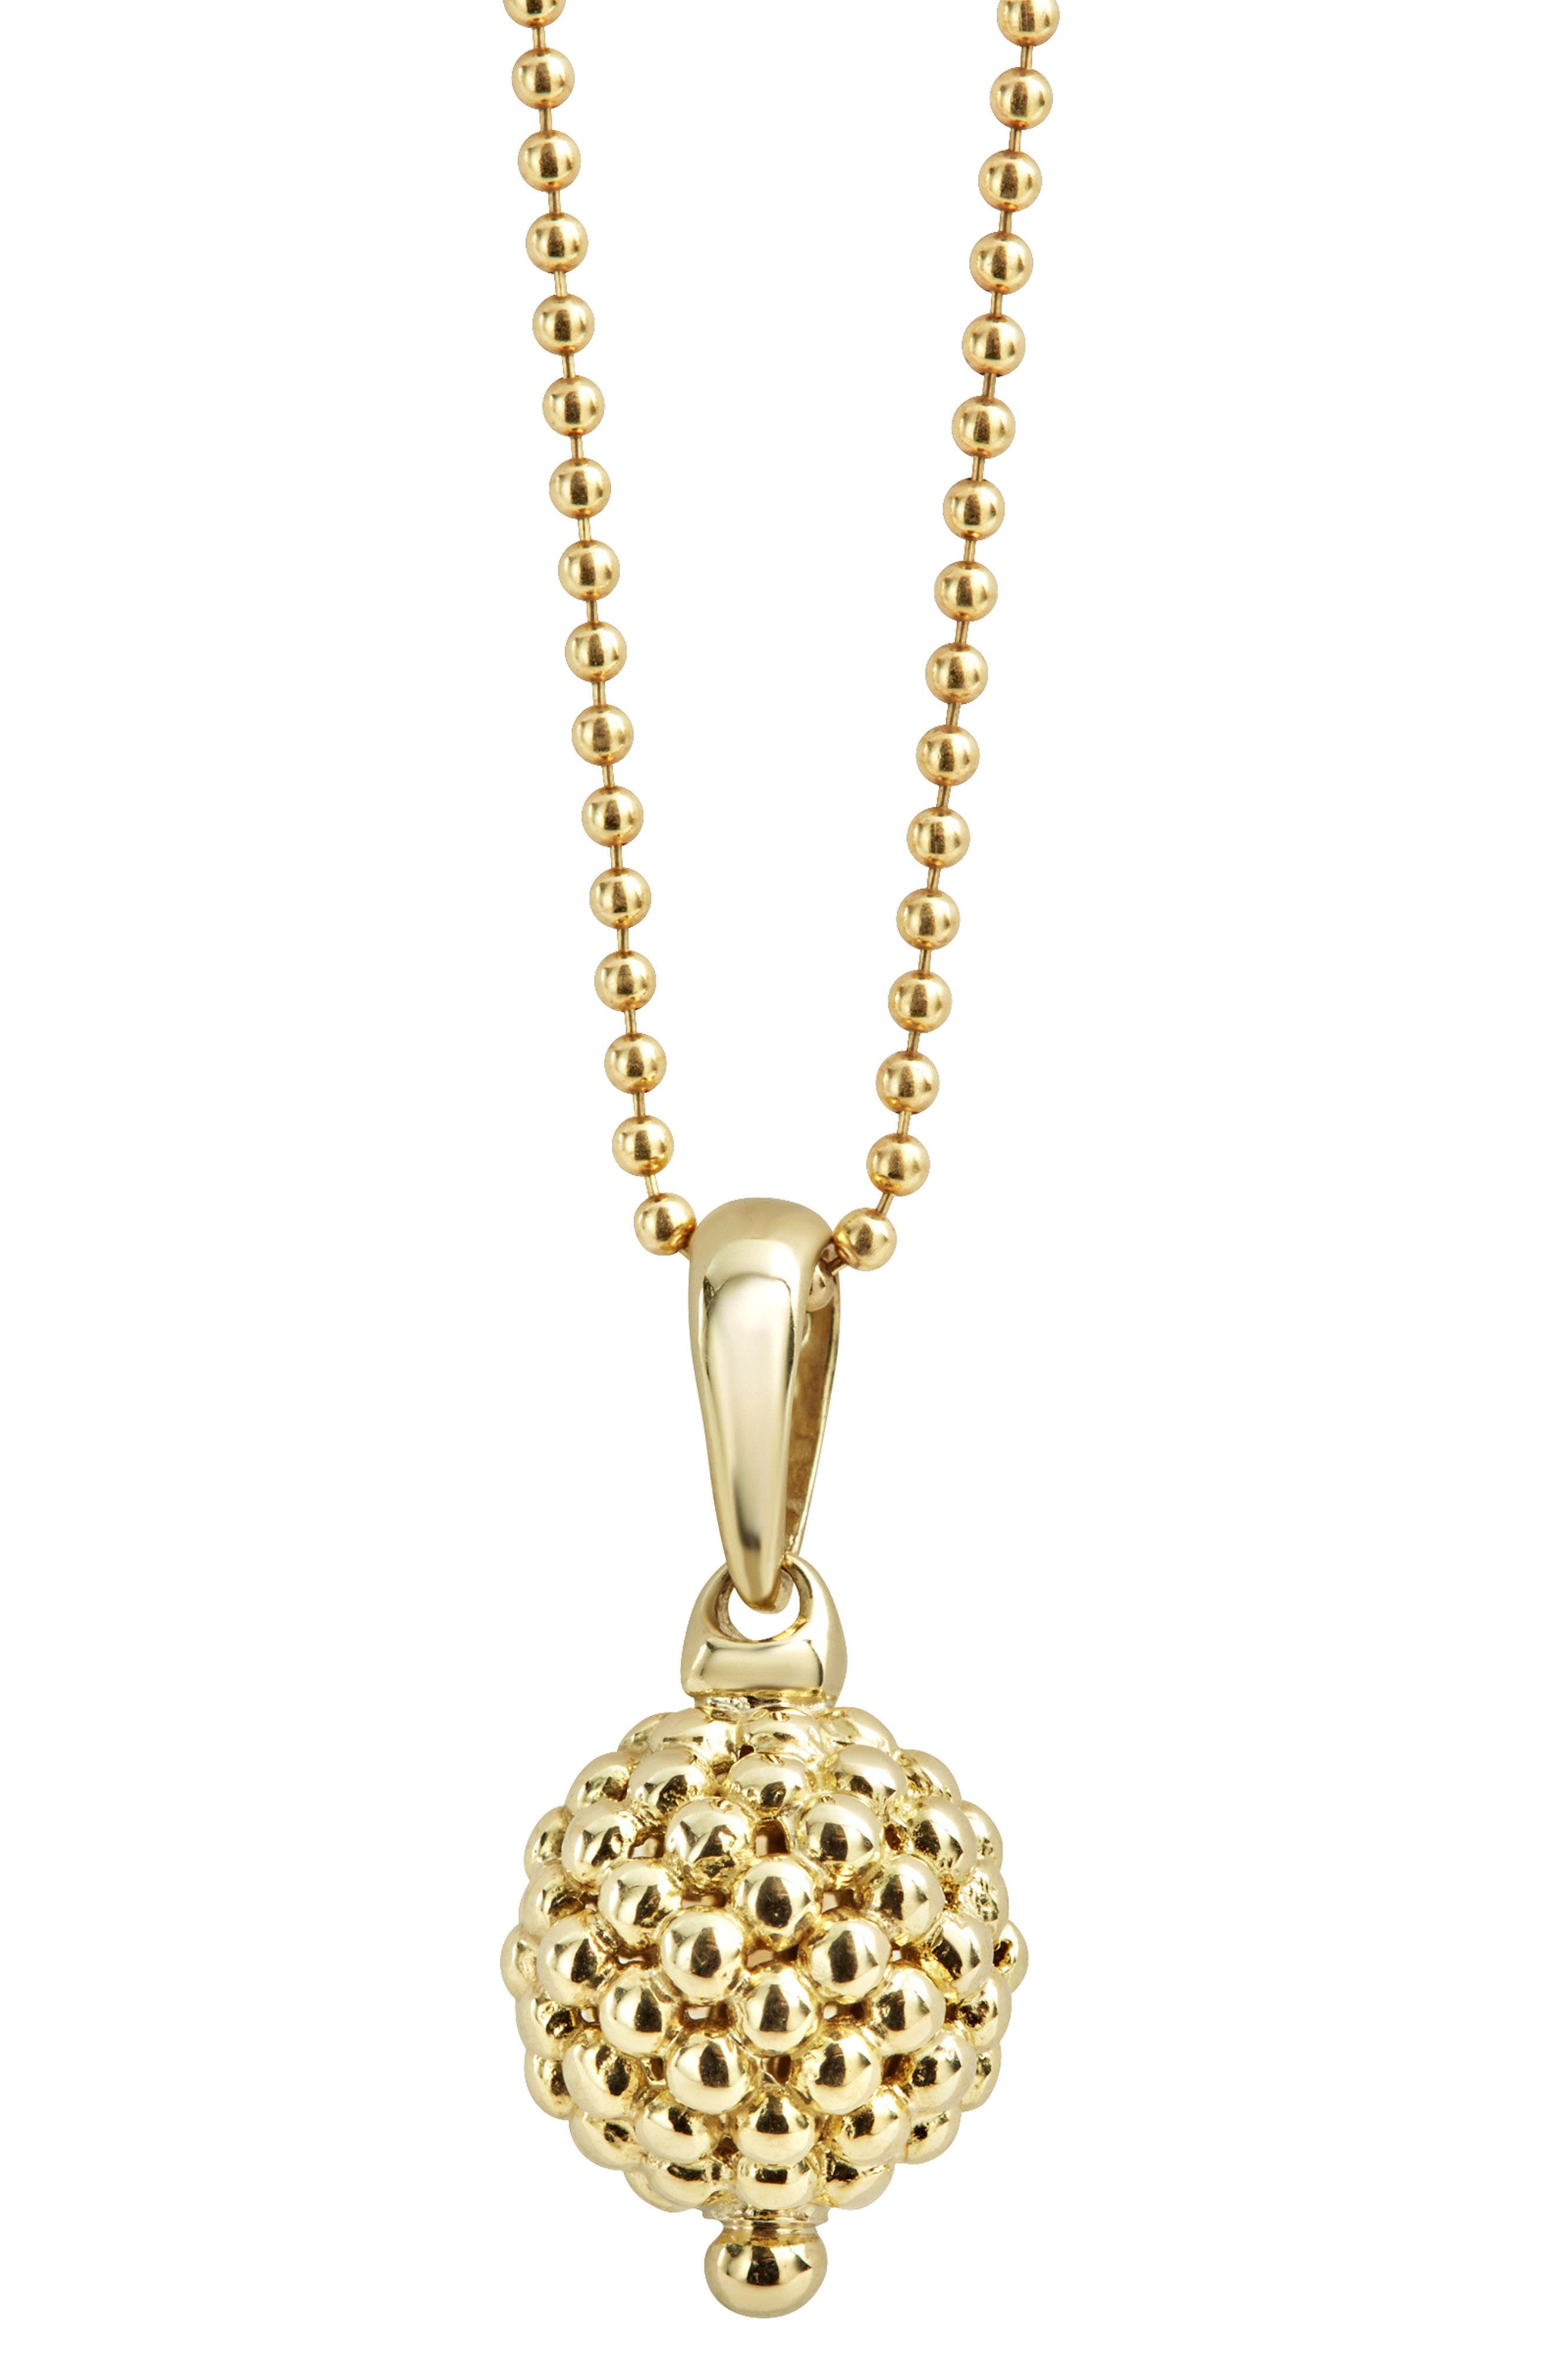 Caviar Gold Ball Pendant Necklace,                             Alternate thumbnail 5, color,                             Gold